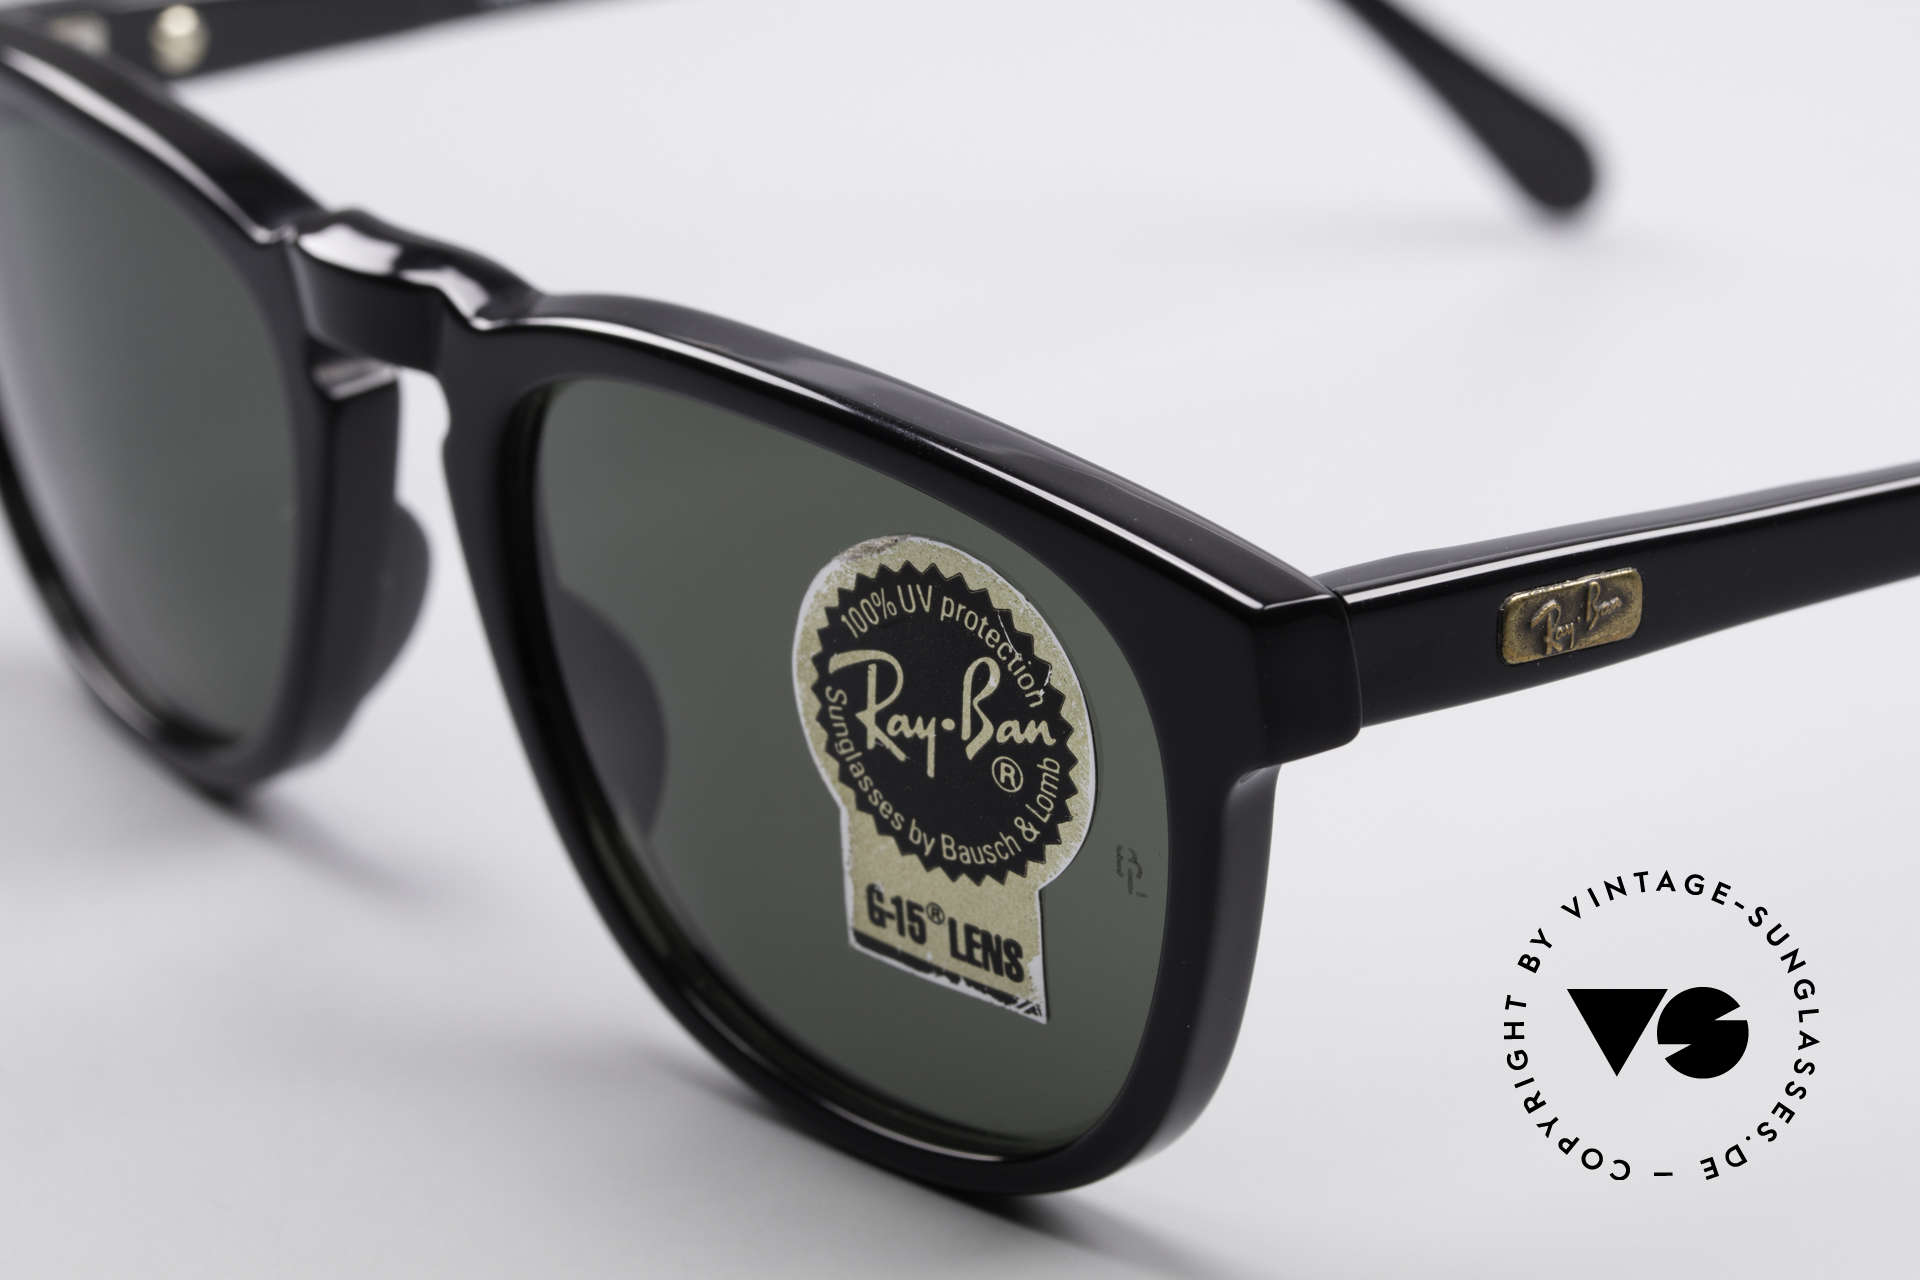 Ray Ban Gatsby Style 2 Old Ray Ban USA Sunglasses, unworn (like all our vintage 1990's RAY-BAN), Made for Men and Women